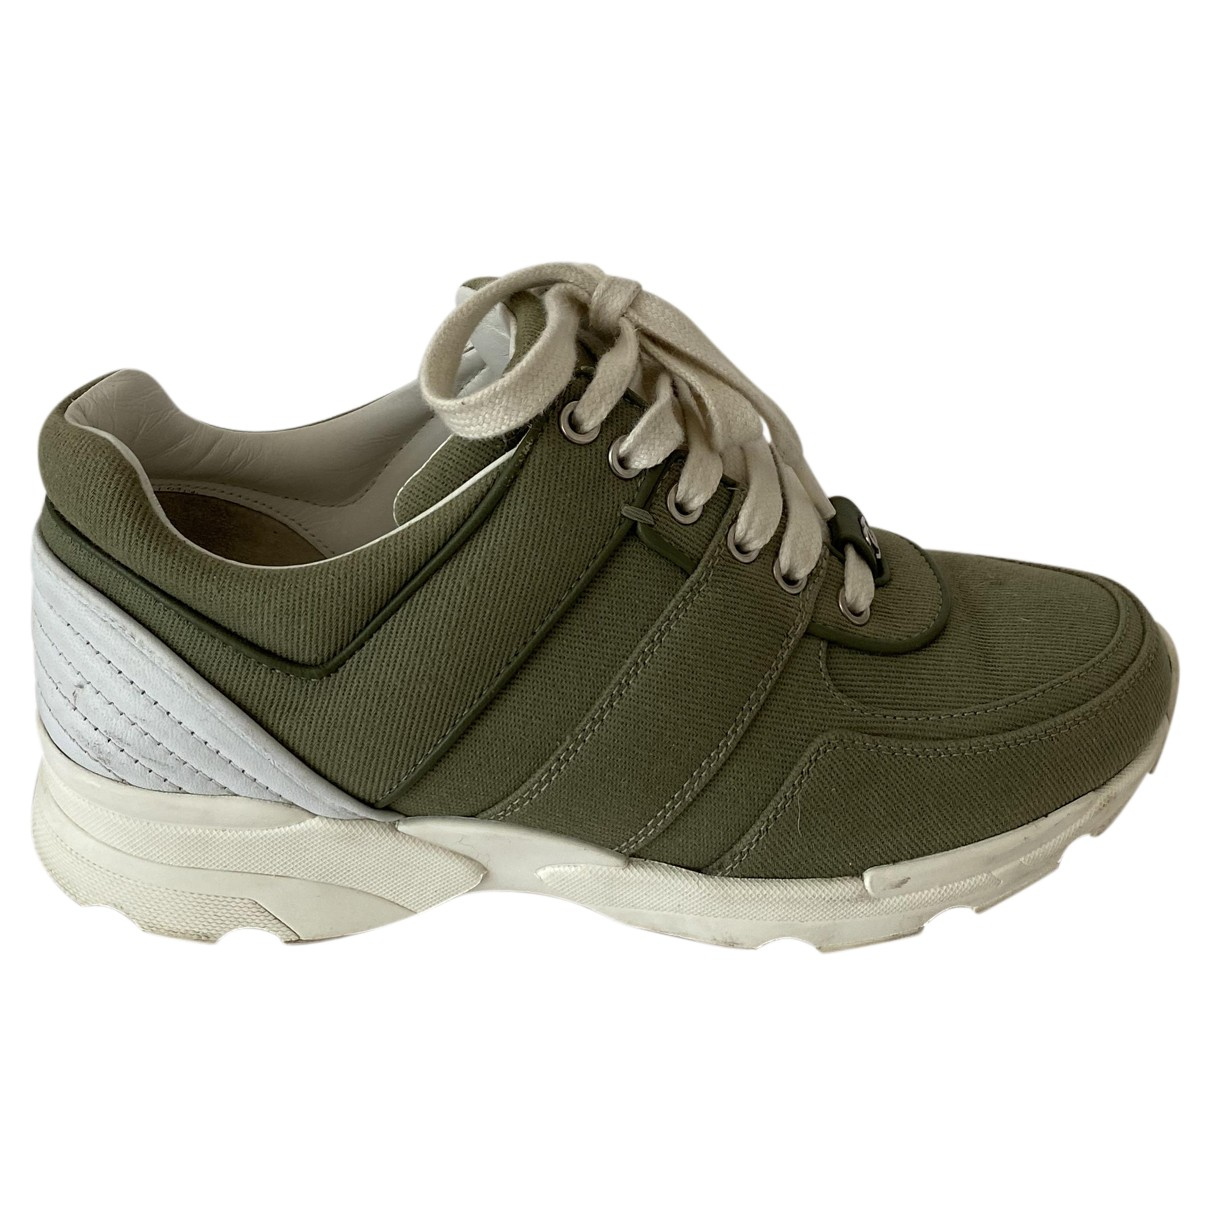 Chanel N Khaki Cloth Trainers for Women 37.5 EU